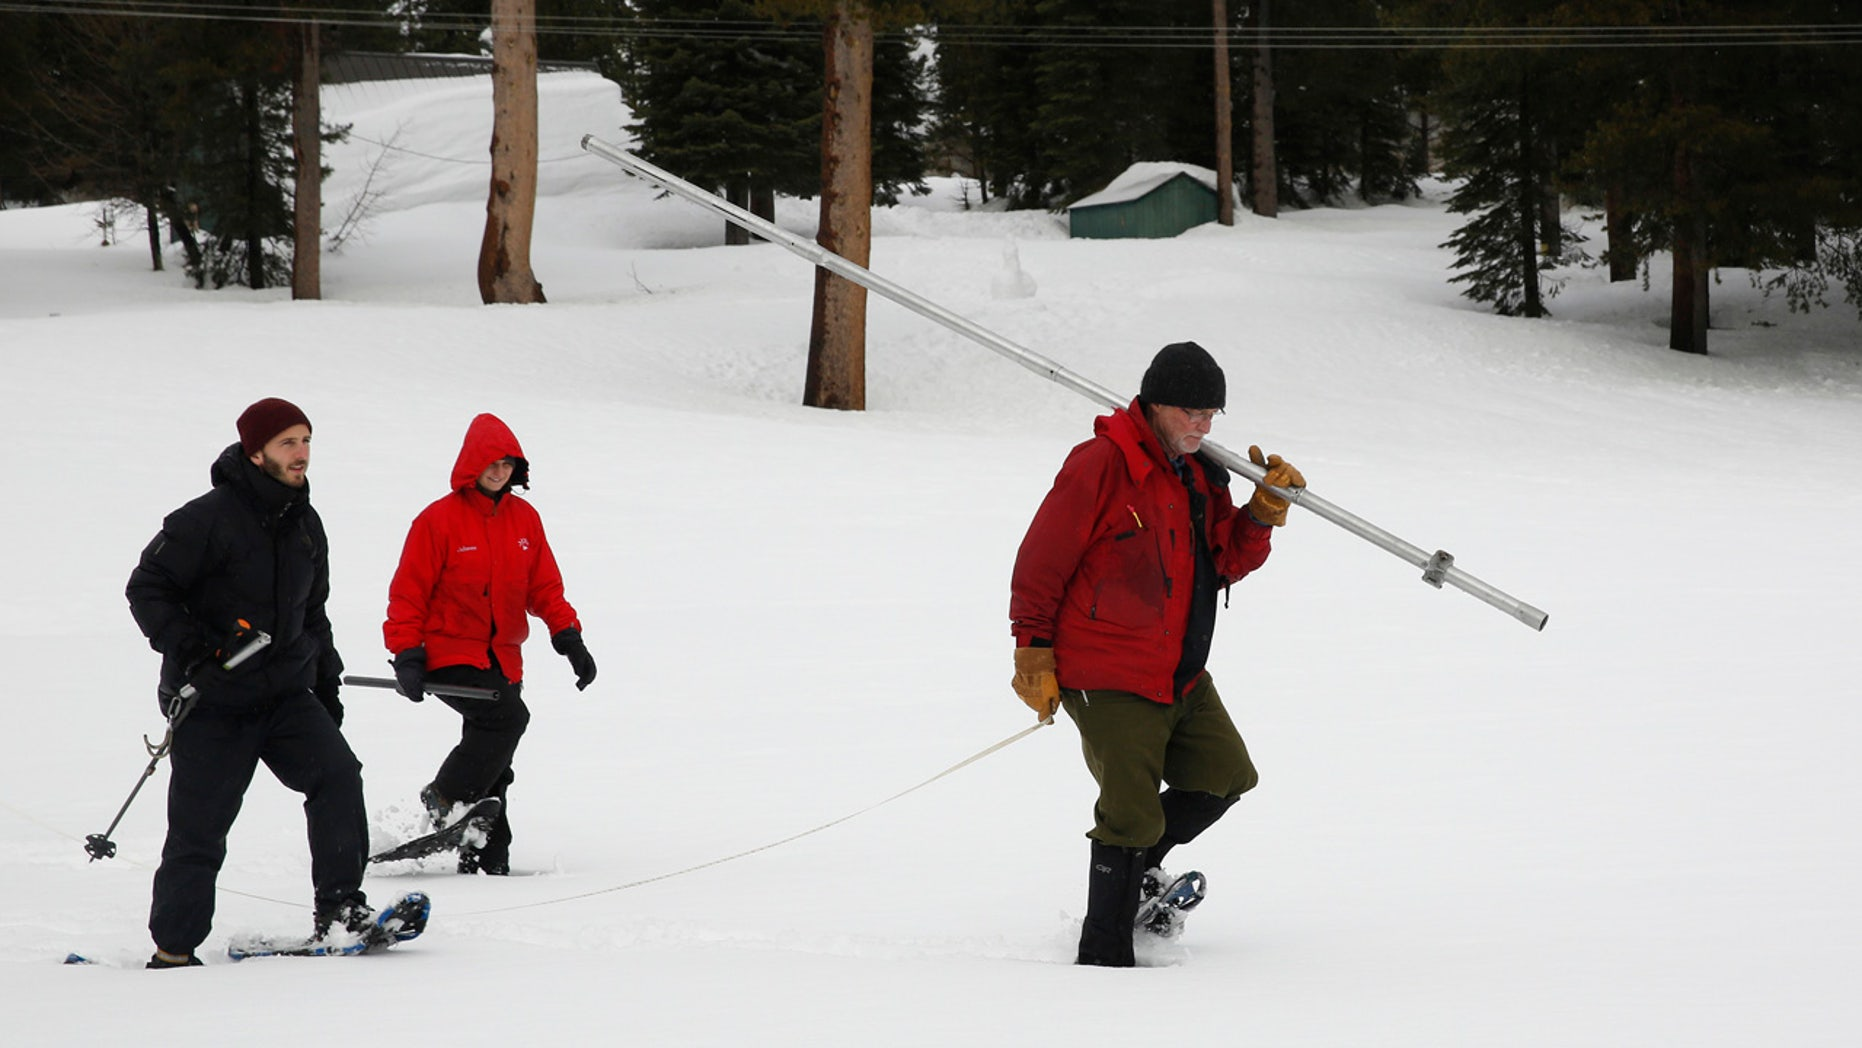 Feb. 2, 2017: Frank Gehrke, right, chief of the California Cooperative Snow Surveys Program for the Department of Water Resources, carries the snowpack measuring tube as he crosses a snow covered meadow while conducting the second manual snow survey of the season in Echo Summit, Calif.